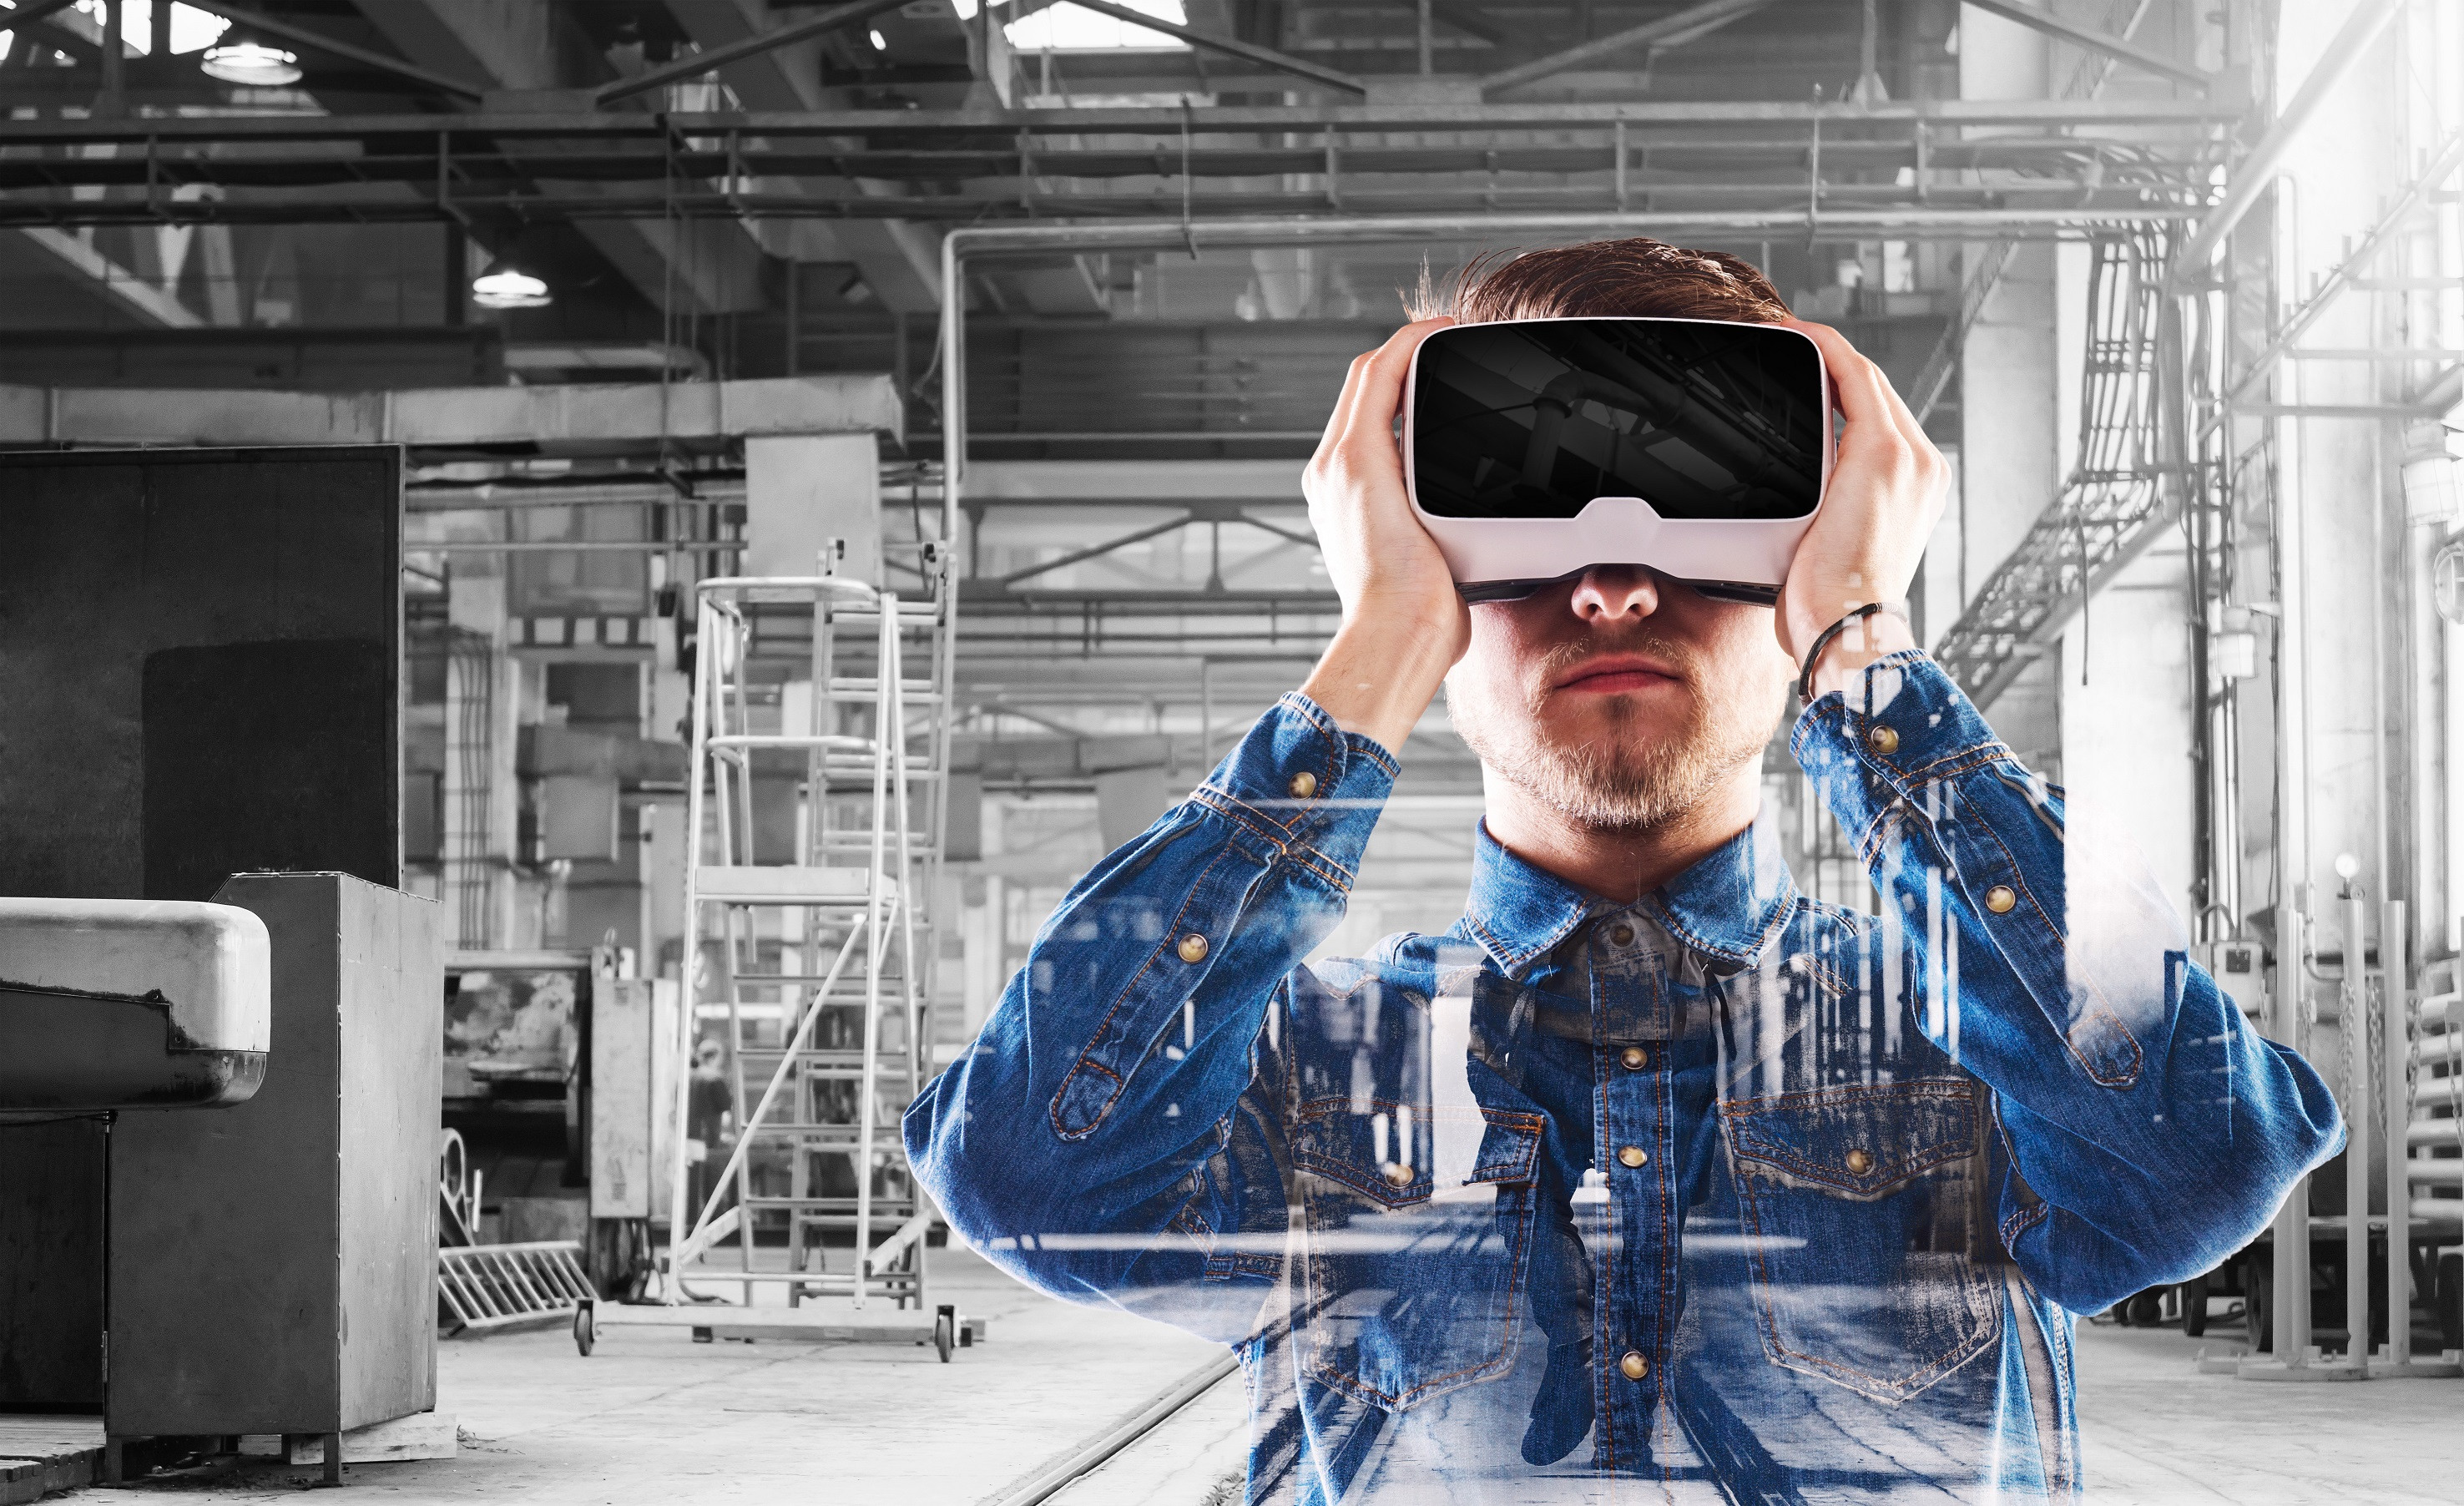 Virtual multisensory reality is poised for big business-to-business sales